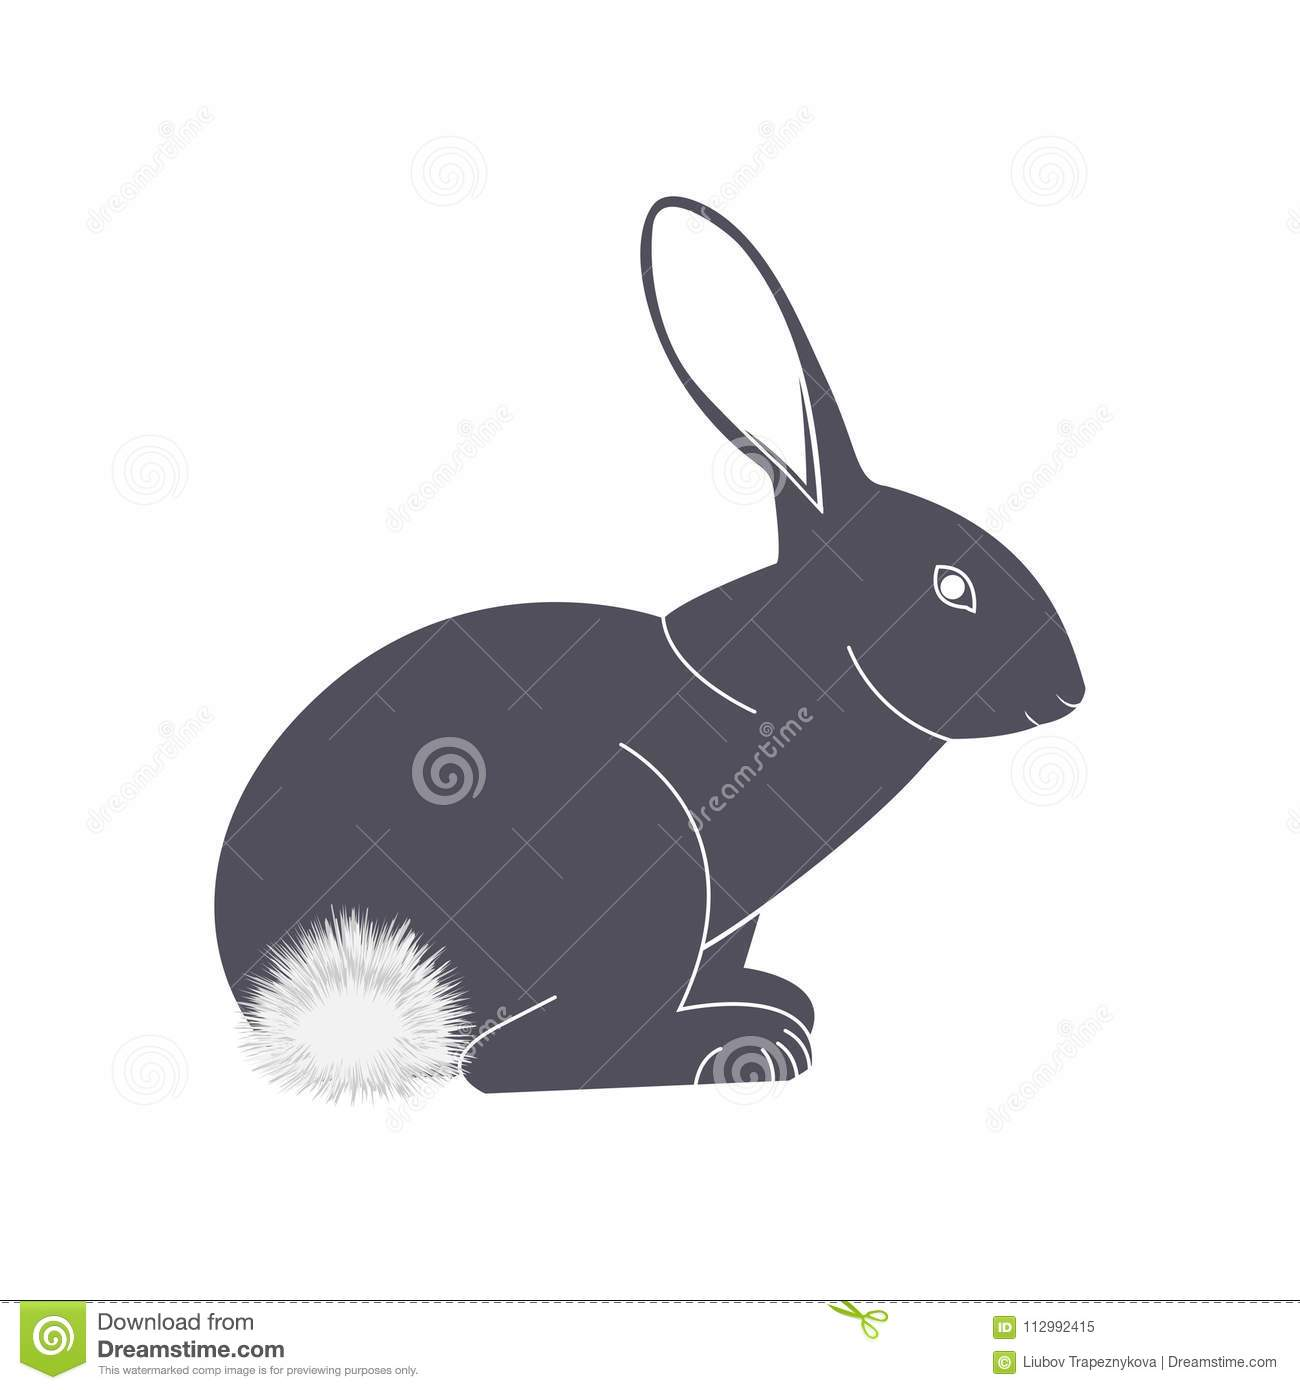 Rabbit with a fluffy tail vector icon.